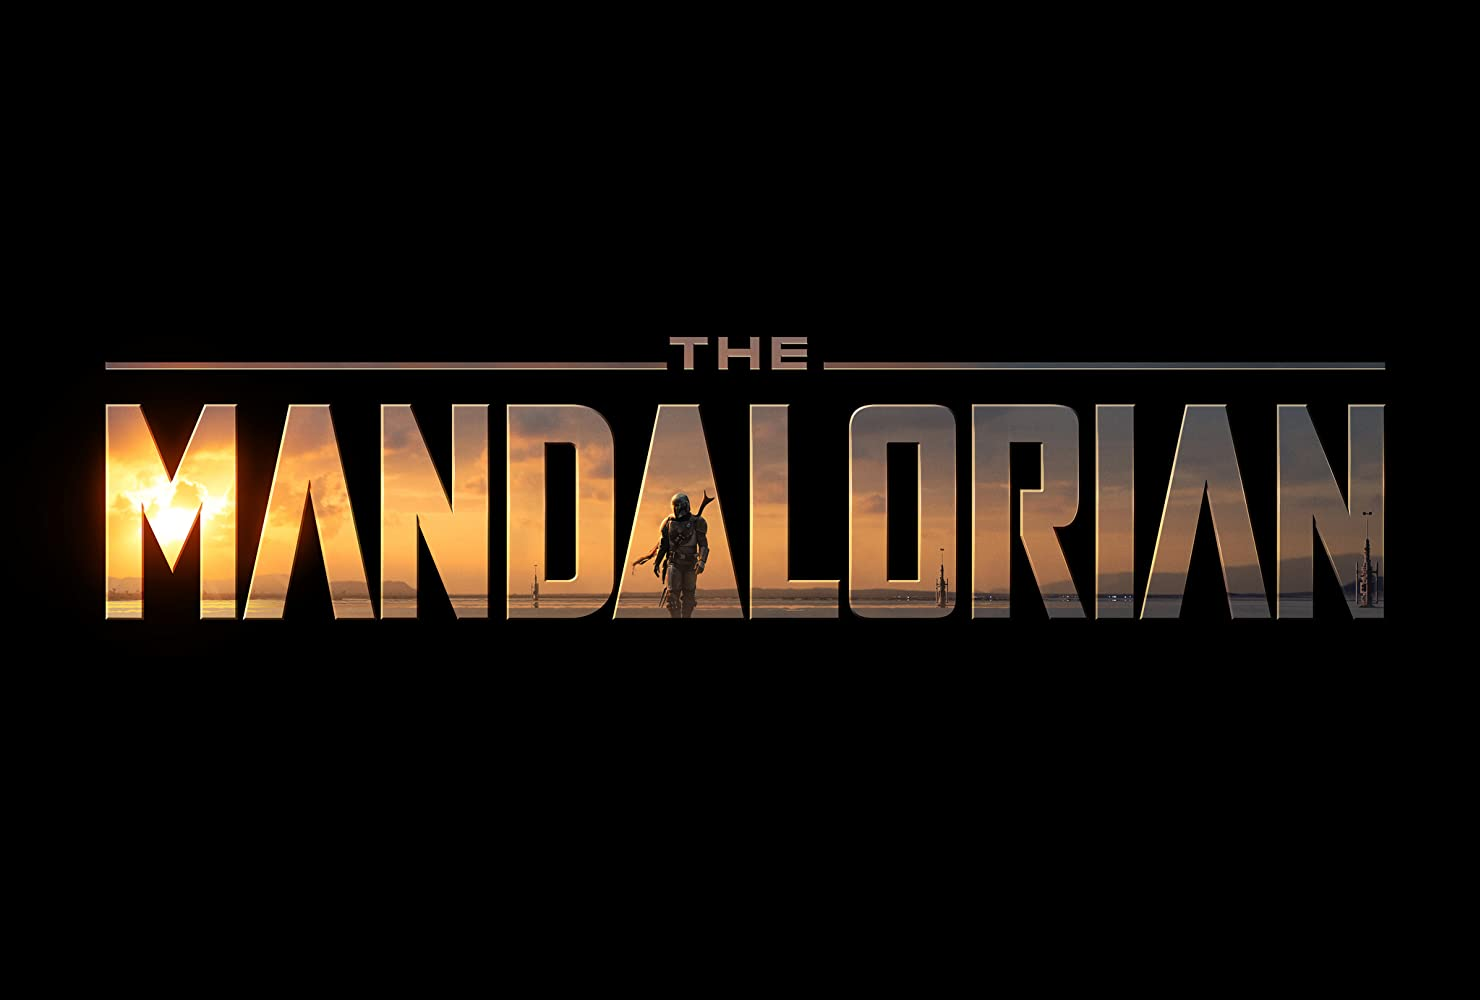 The Mandalorian title card